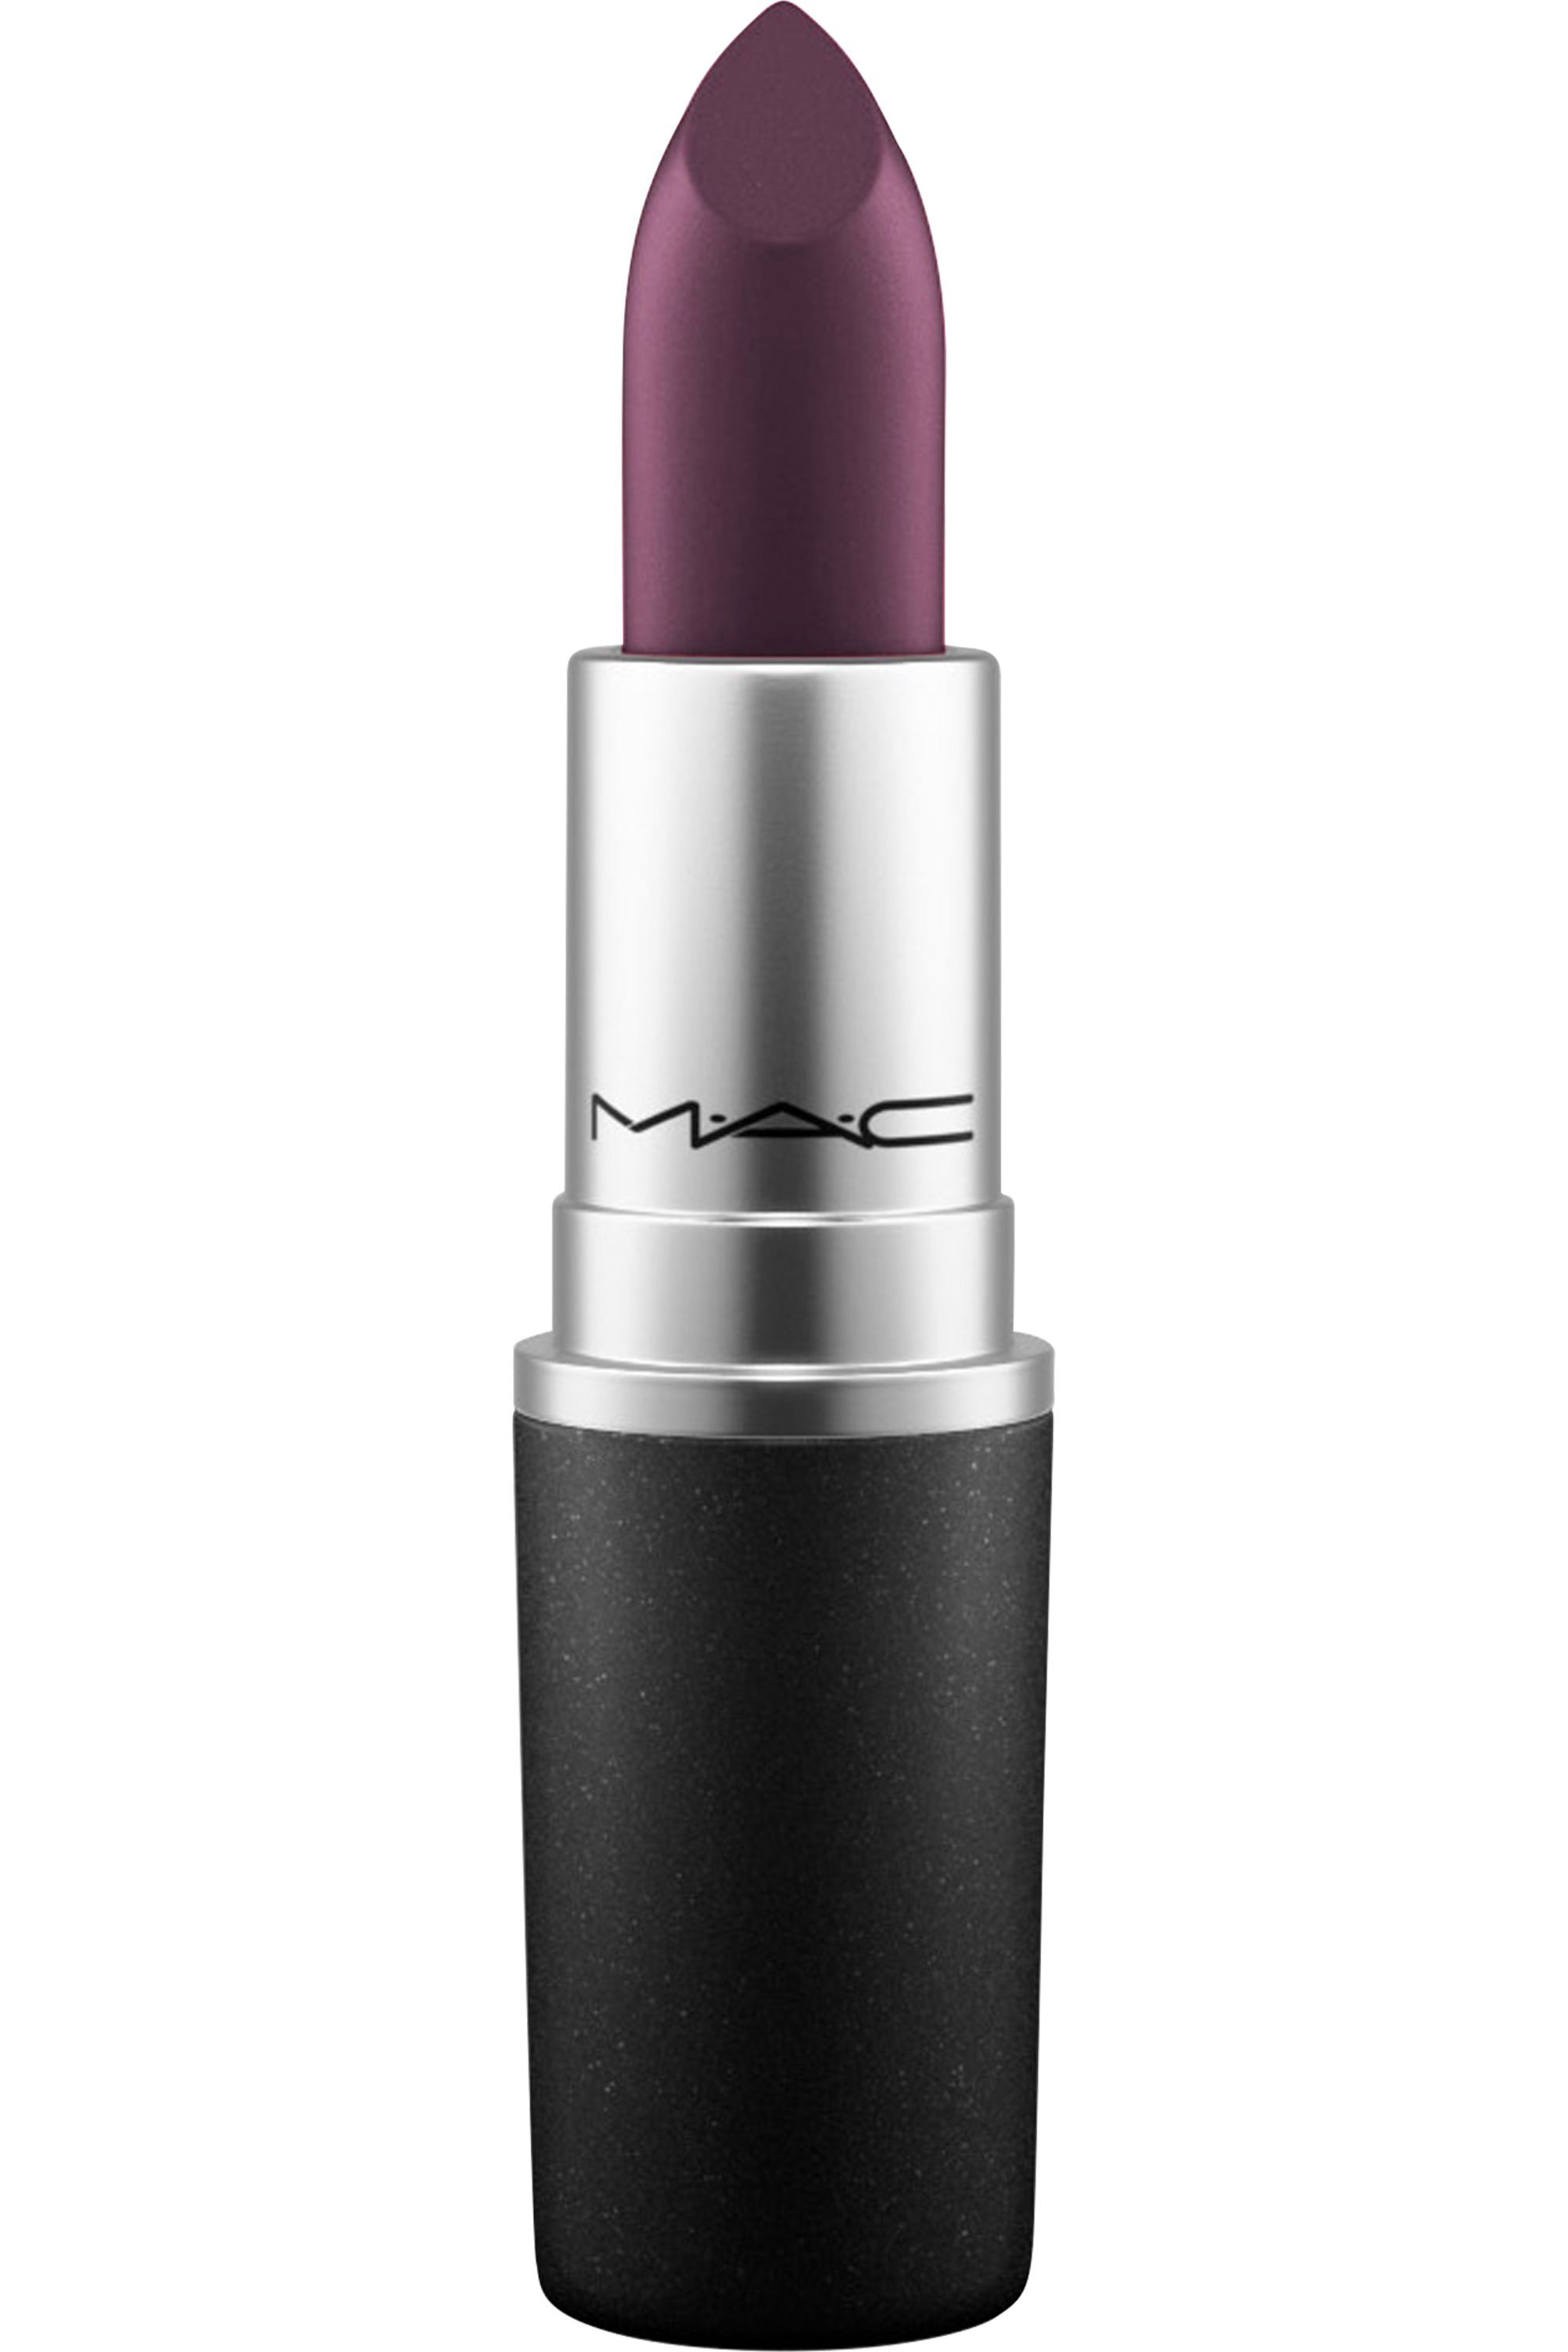 Blissim : M.A.C - Rouge à lèvres Mat - Smoked Purple